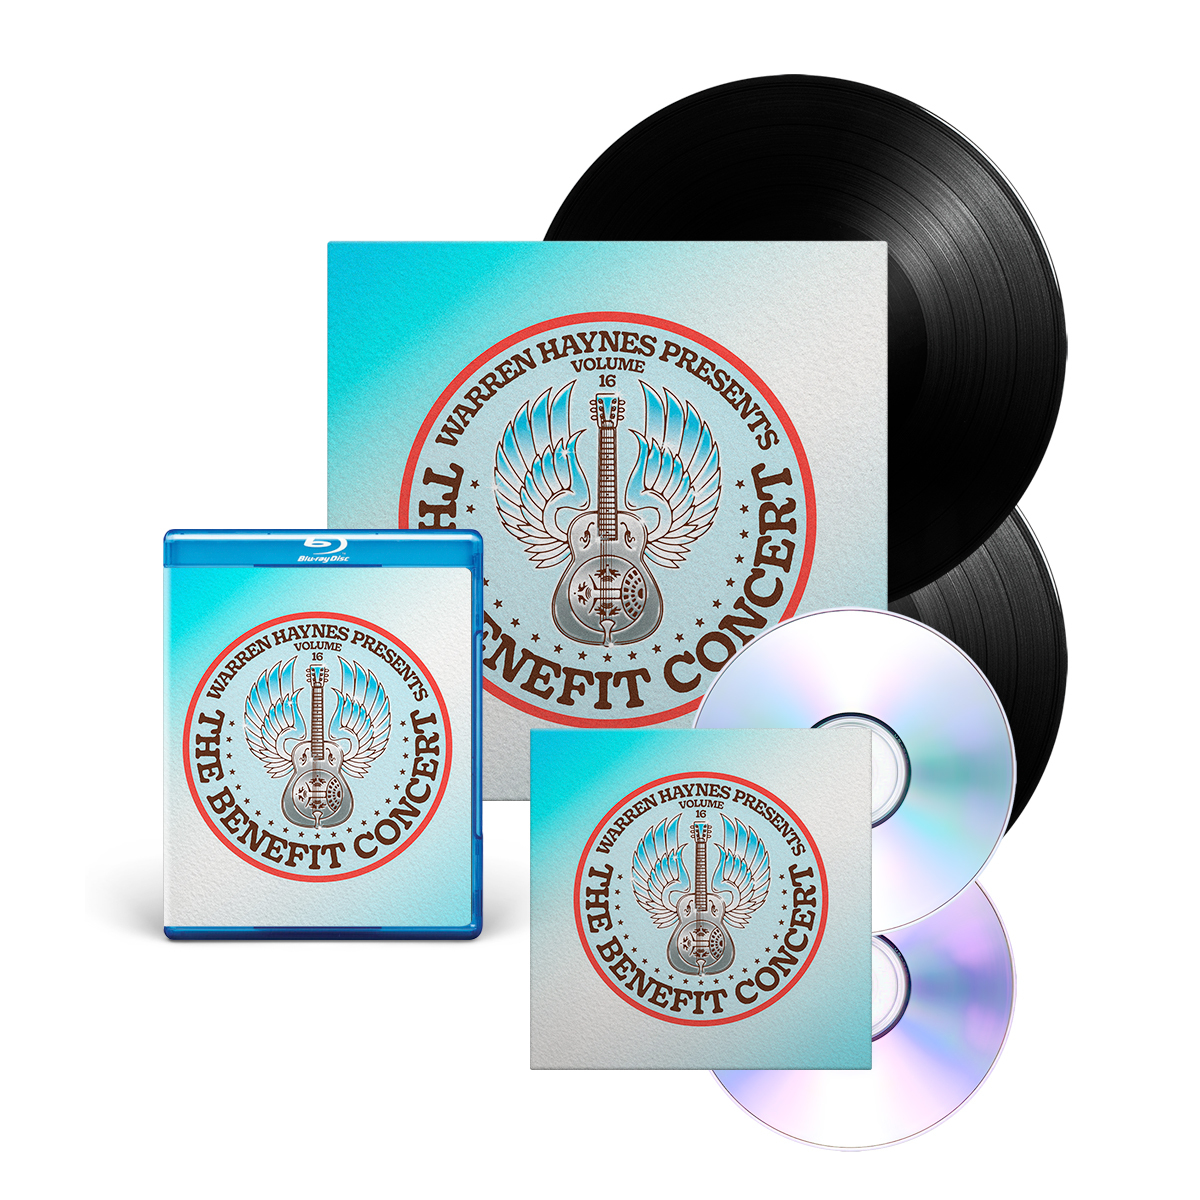 Double Vinyl + Blu-Ray + CD/DVD Bundle: The Benefit Concert V. 16